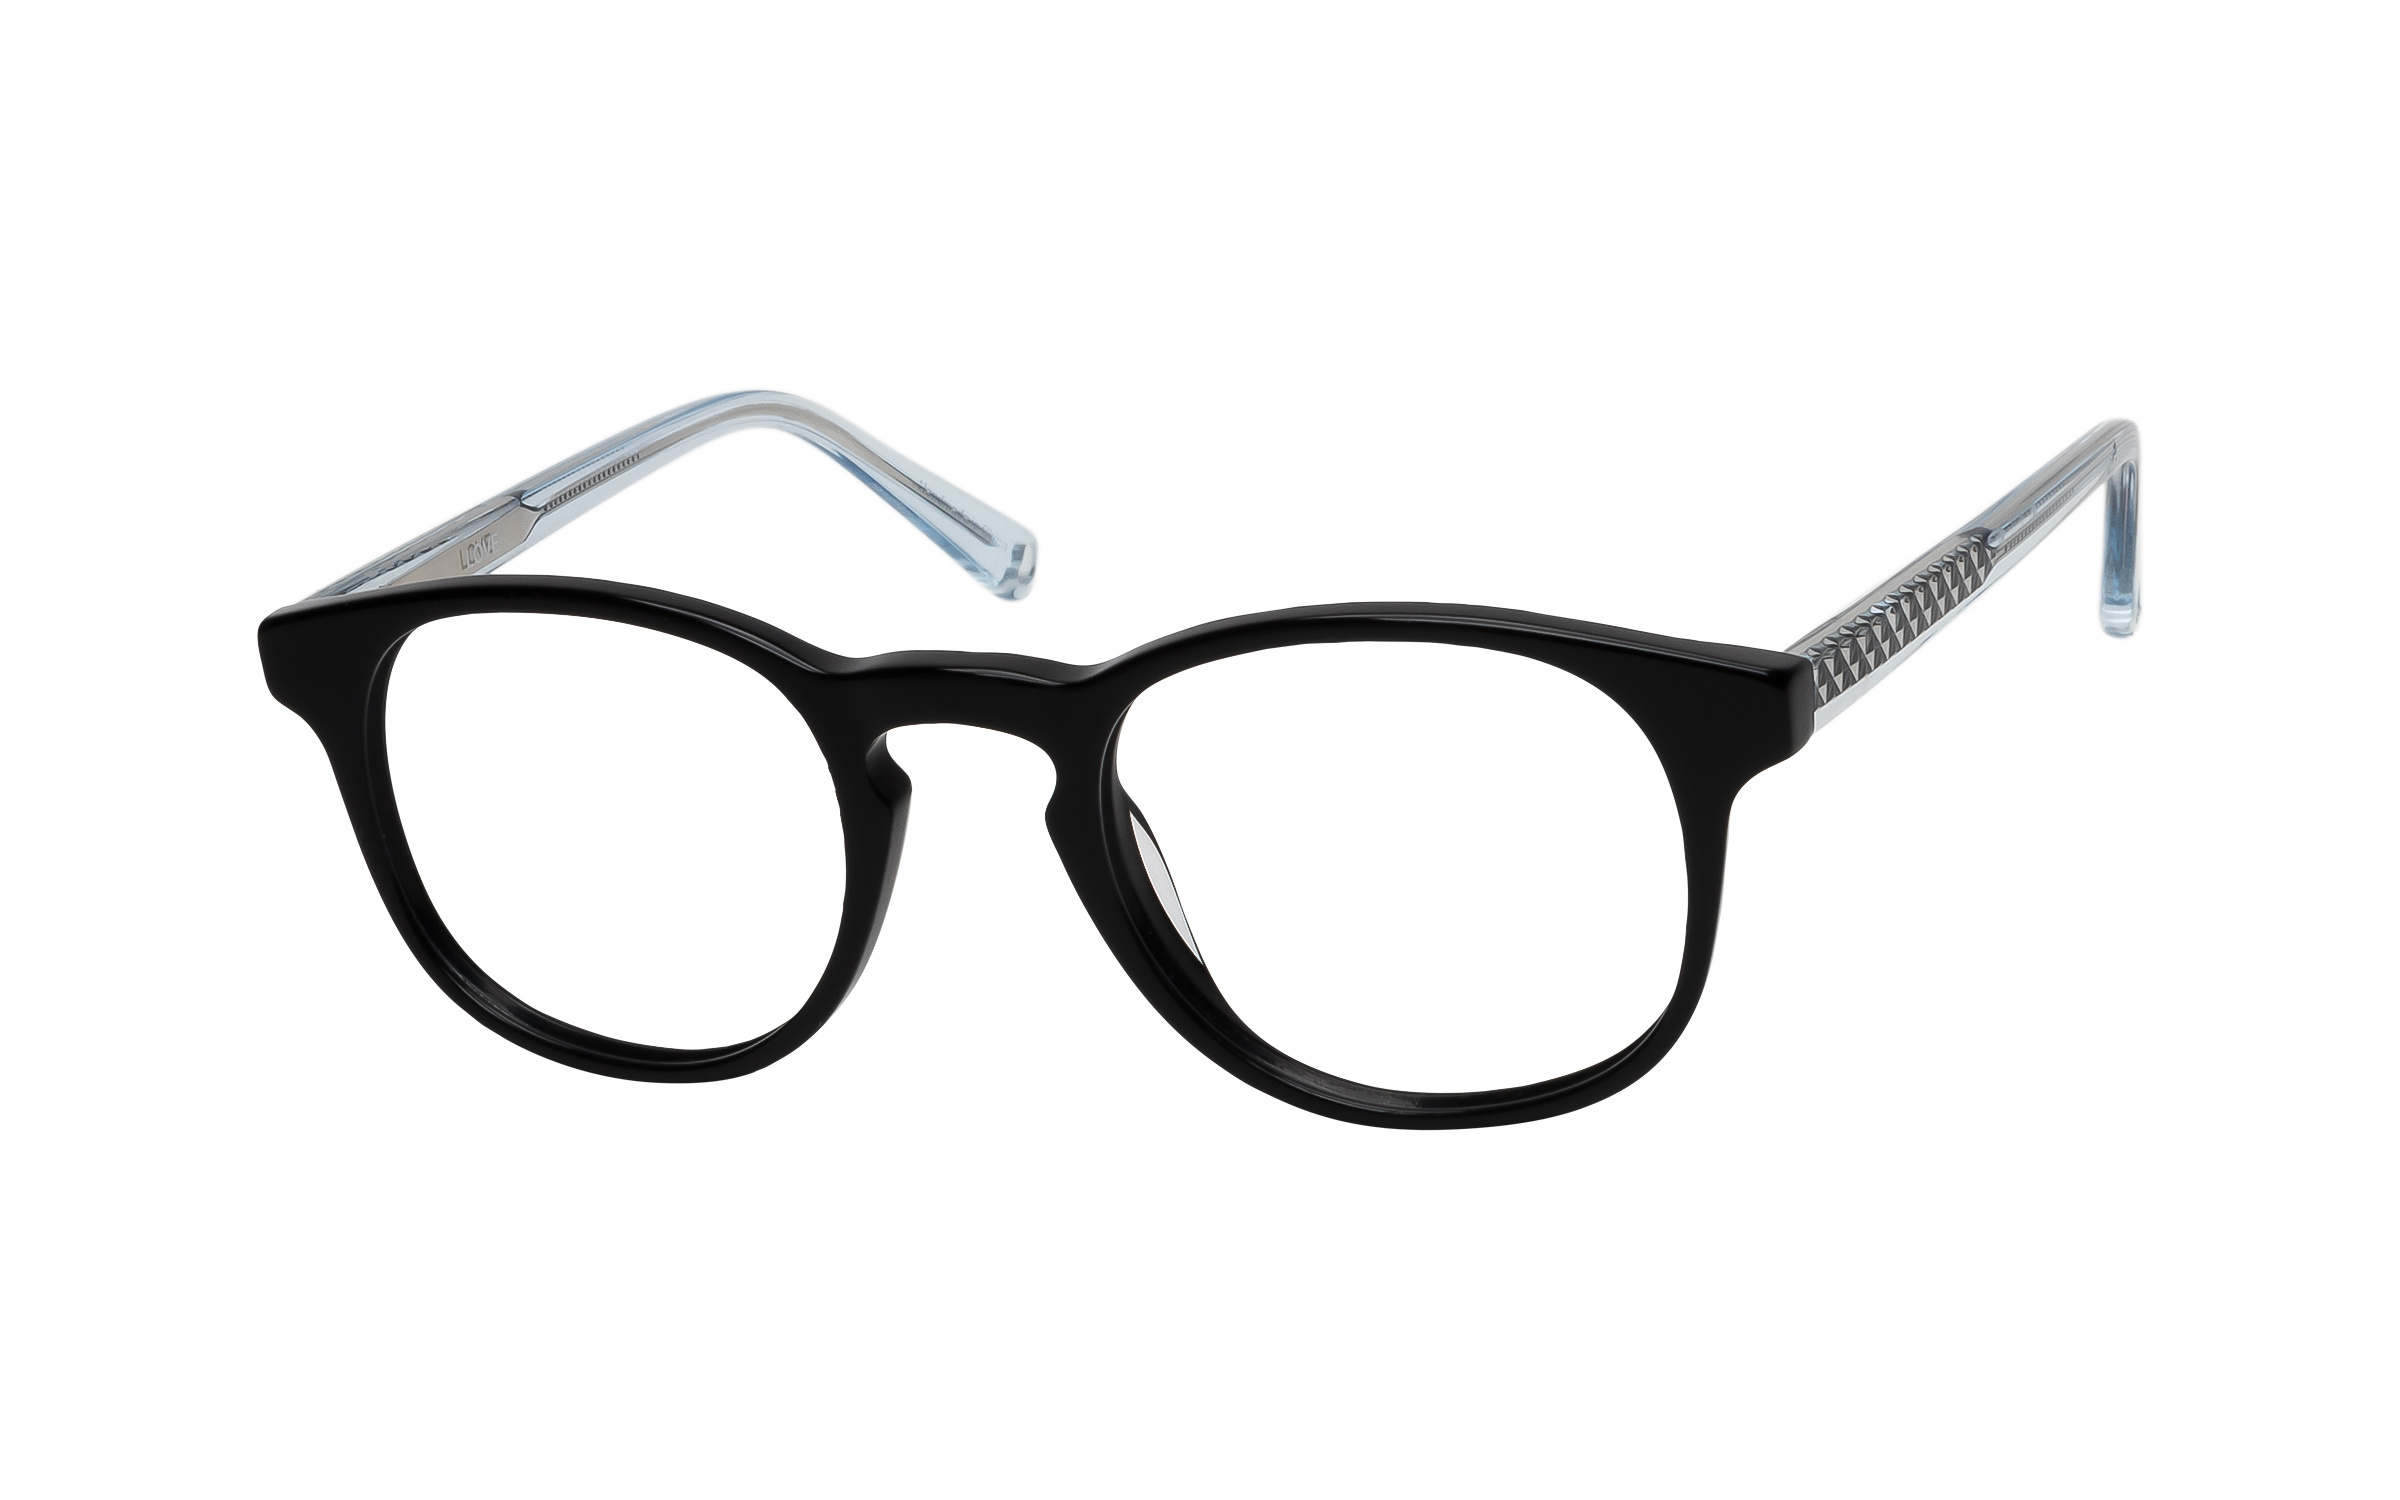 Women's Vintage Glasses Black Love Online Clearly